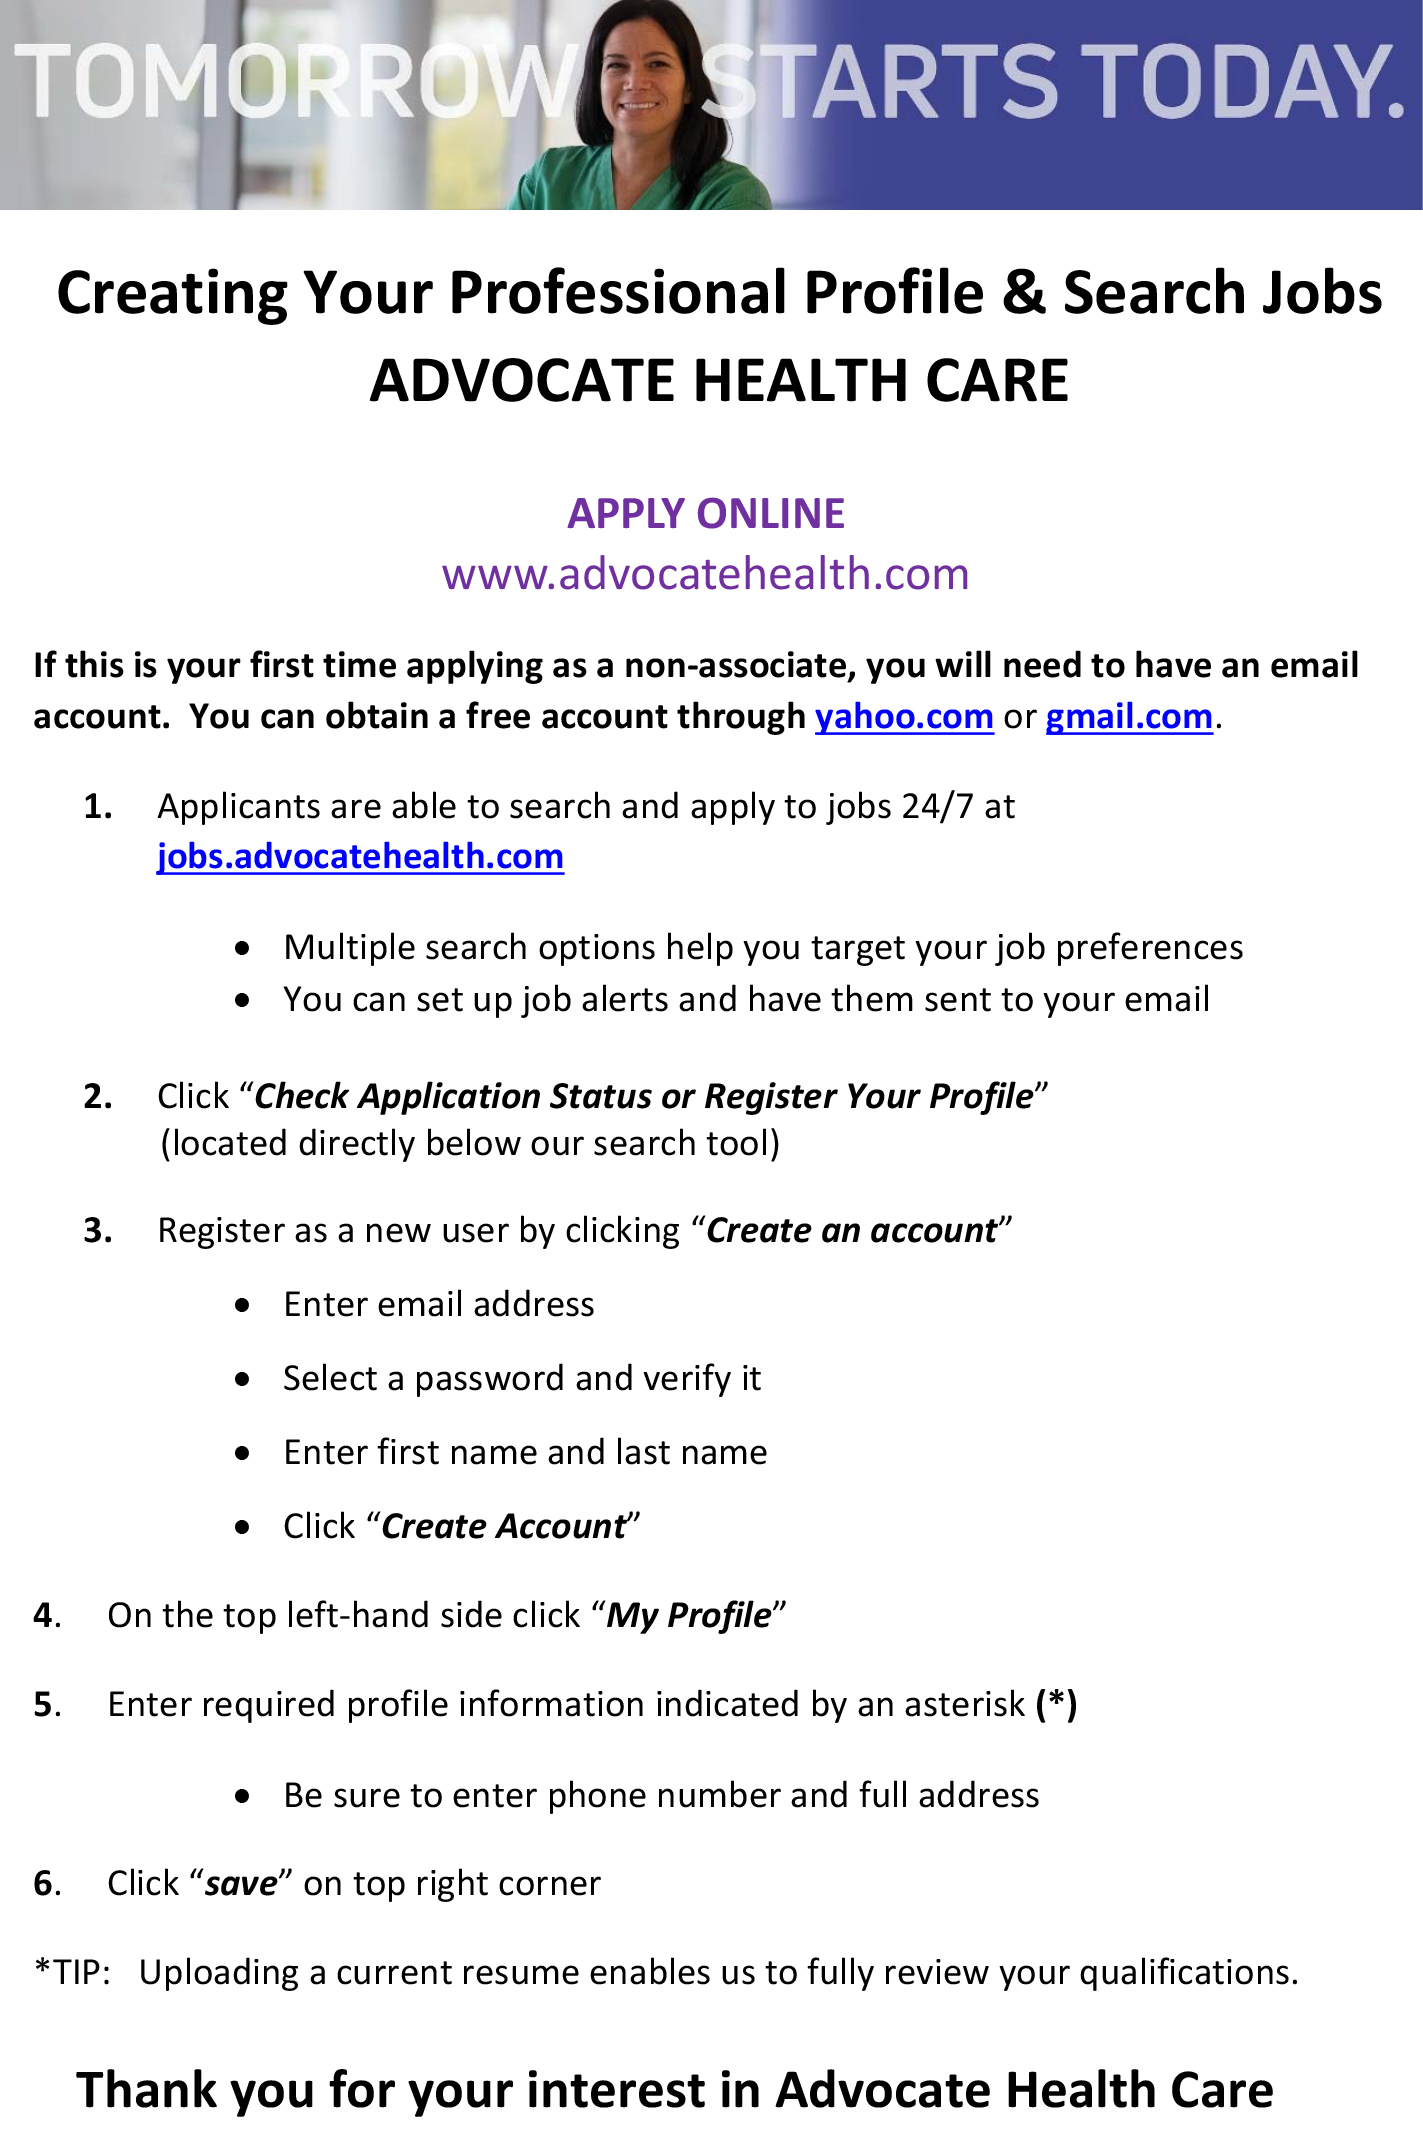 How to create a profile and apply to jobs at advocate health care qh4jey